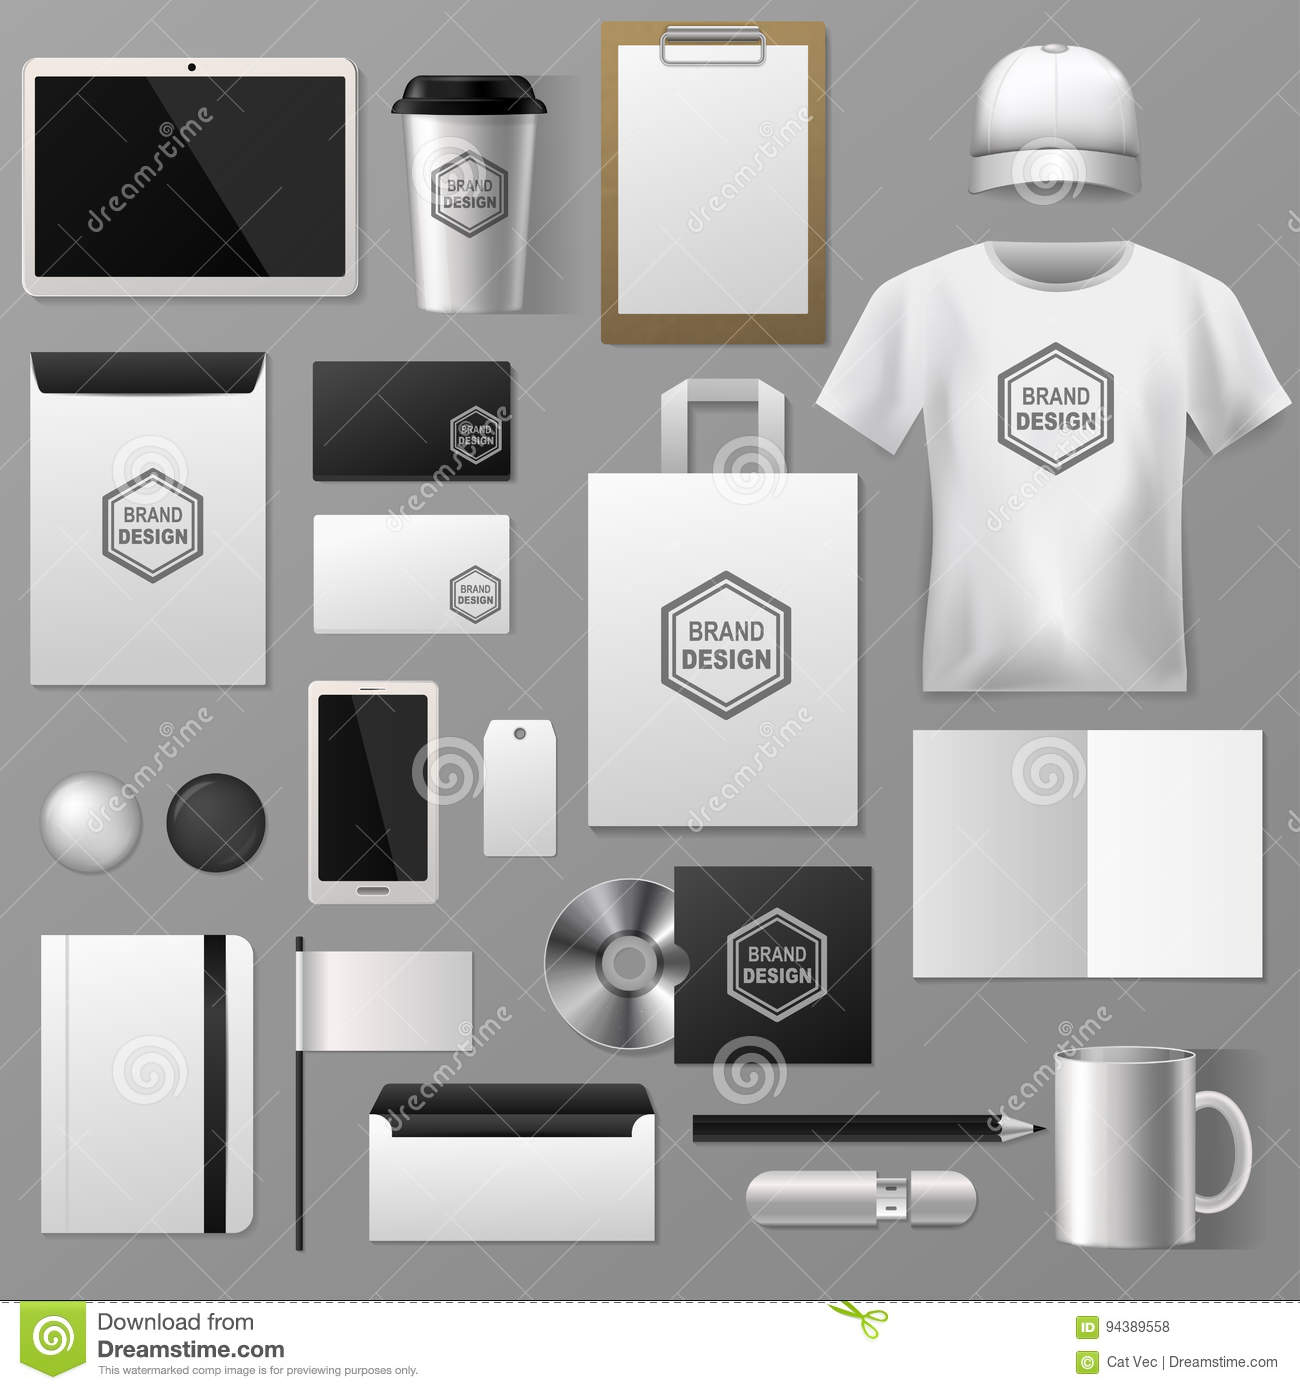 Blank Stationery And Corporate Identity Template Consist: Blank Stationery Set For Corporate Company Identity System